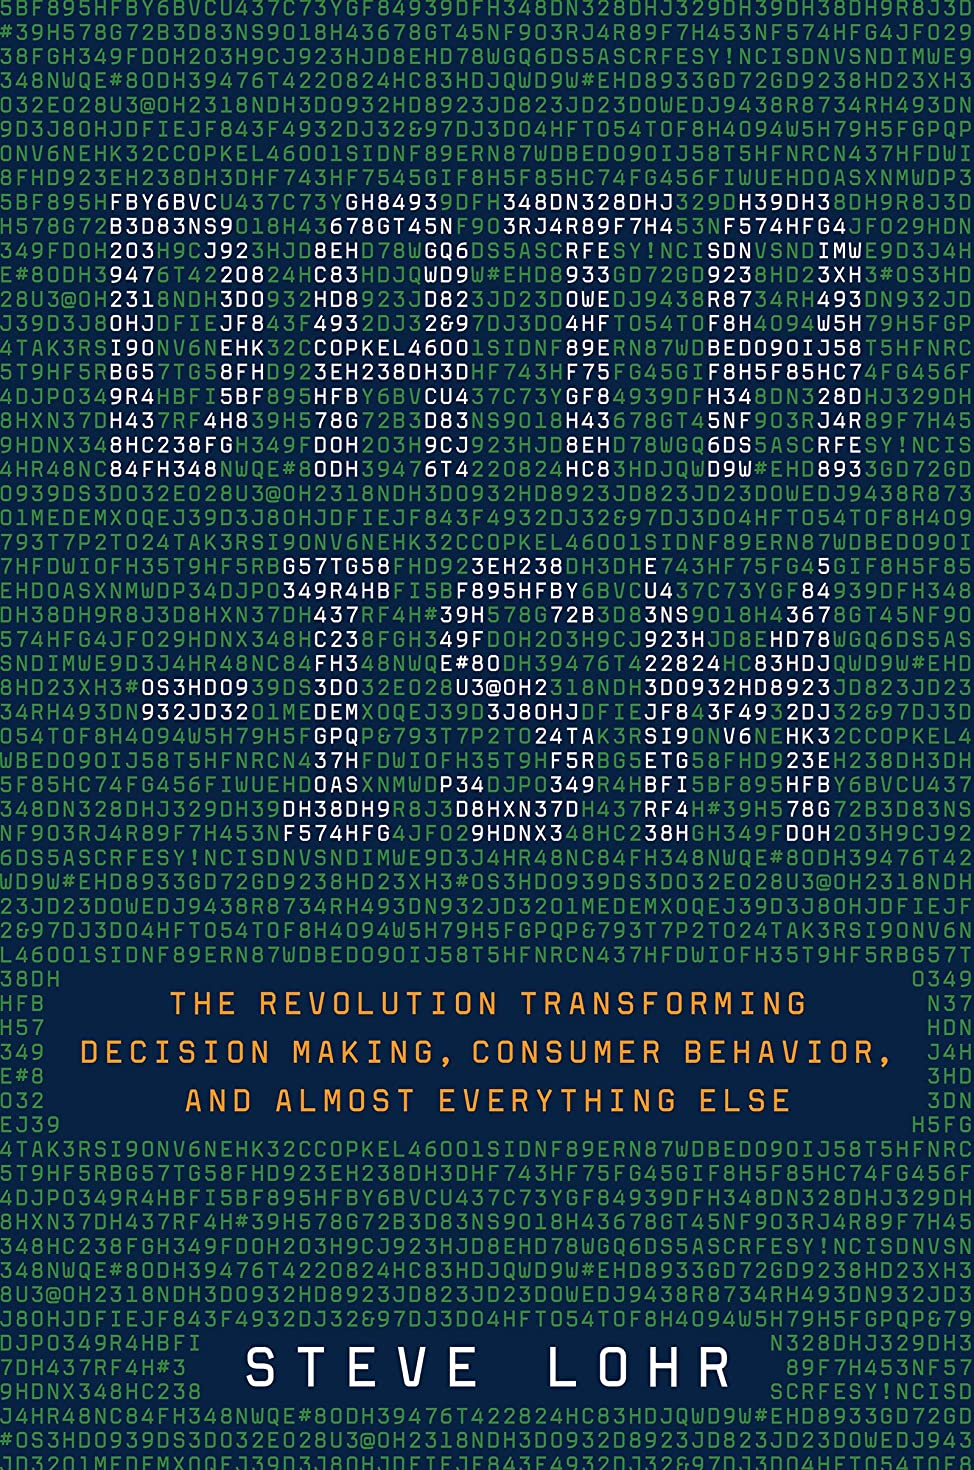 恋人彼女はニコチンData-ism: The Revolution Transforming Decision Making, Consumer Behavior, and Almost Everything Else (English Edition)